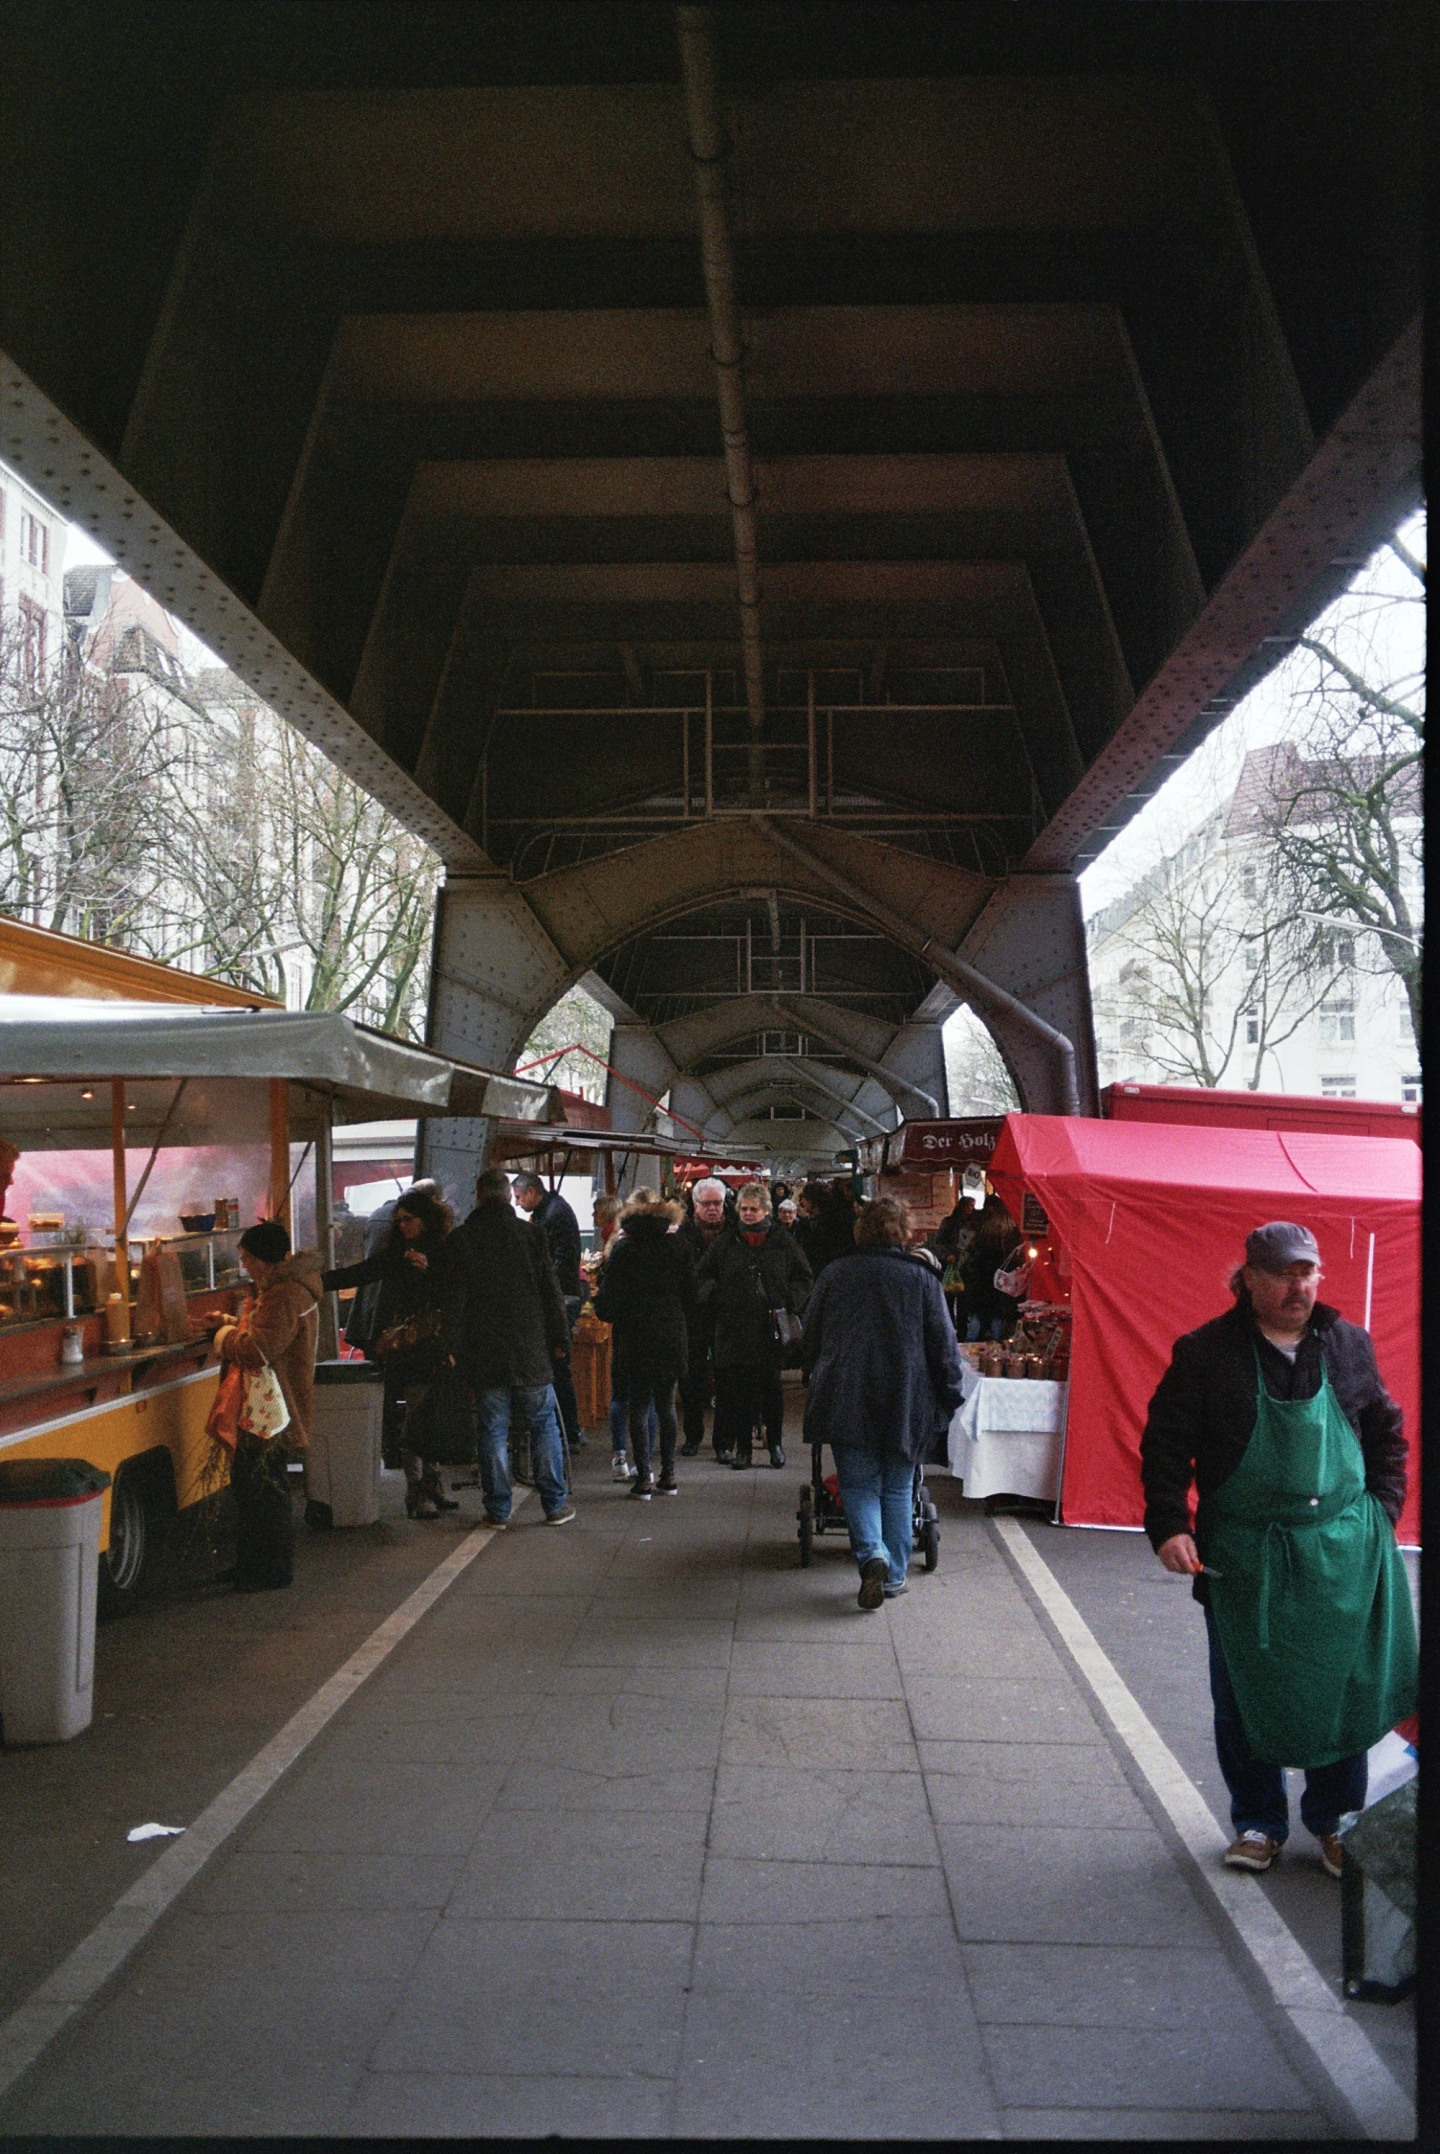 Isemarkt in Hamburg-Eppendorf. Shot on 35mm.